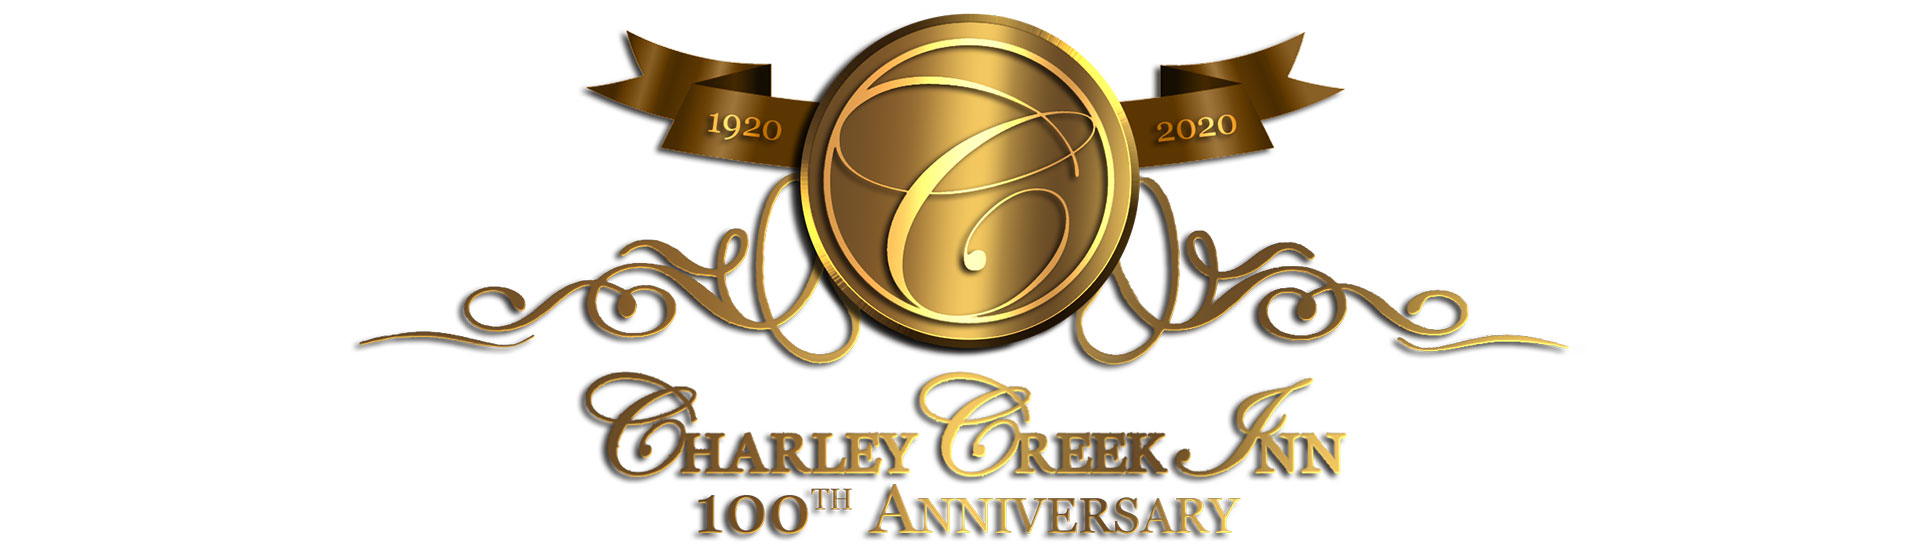 Charley Creek Inn 100th Anniversary